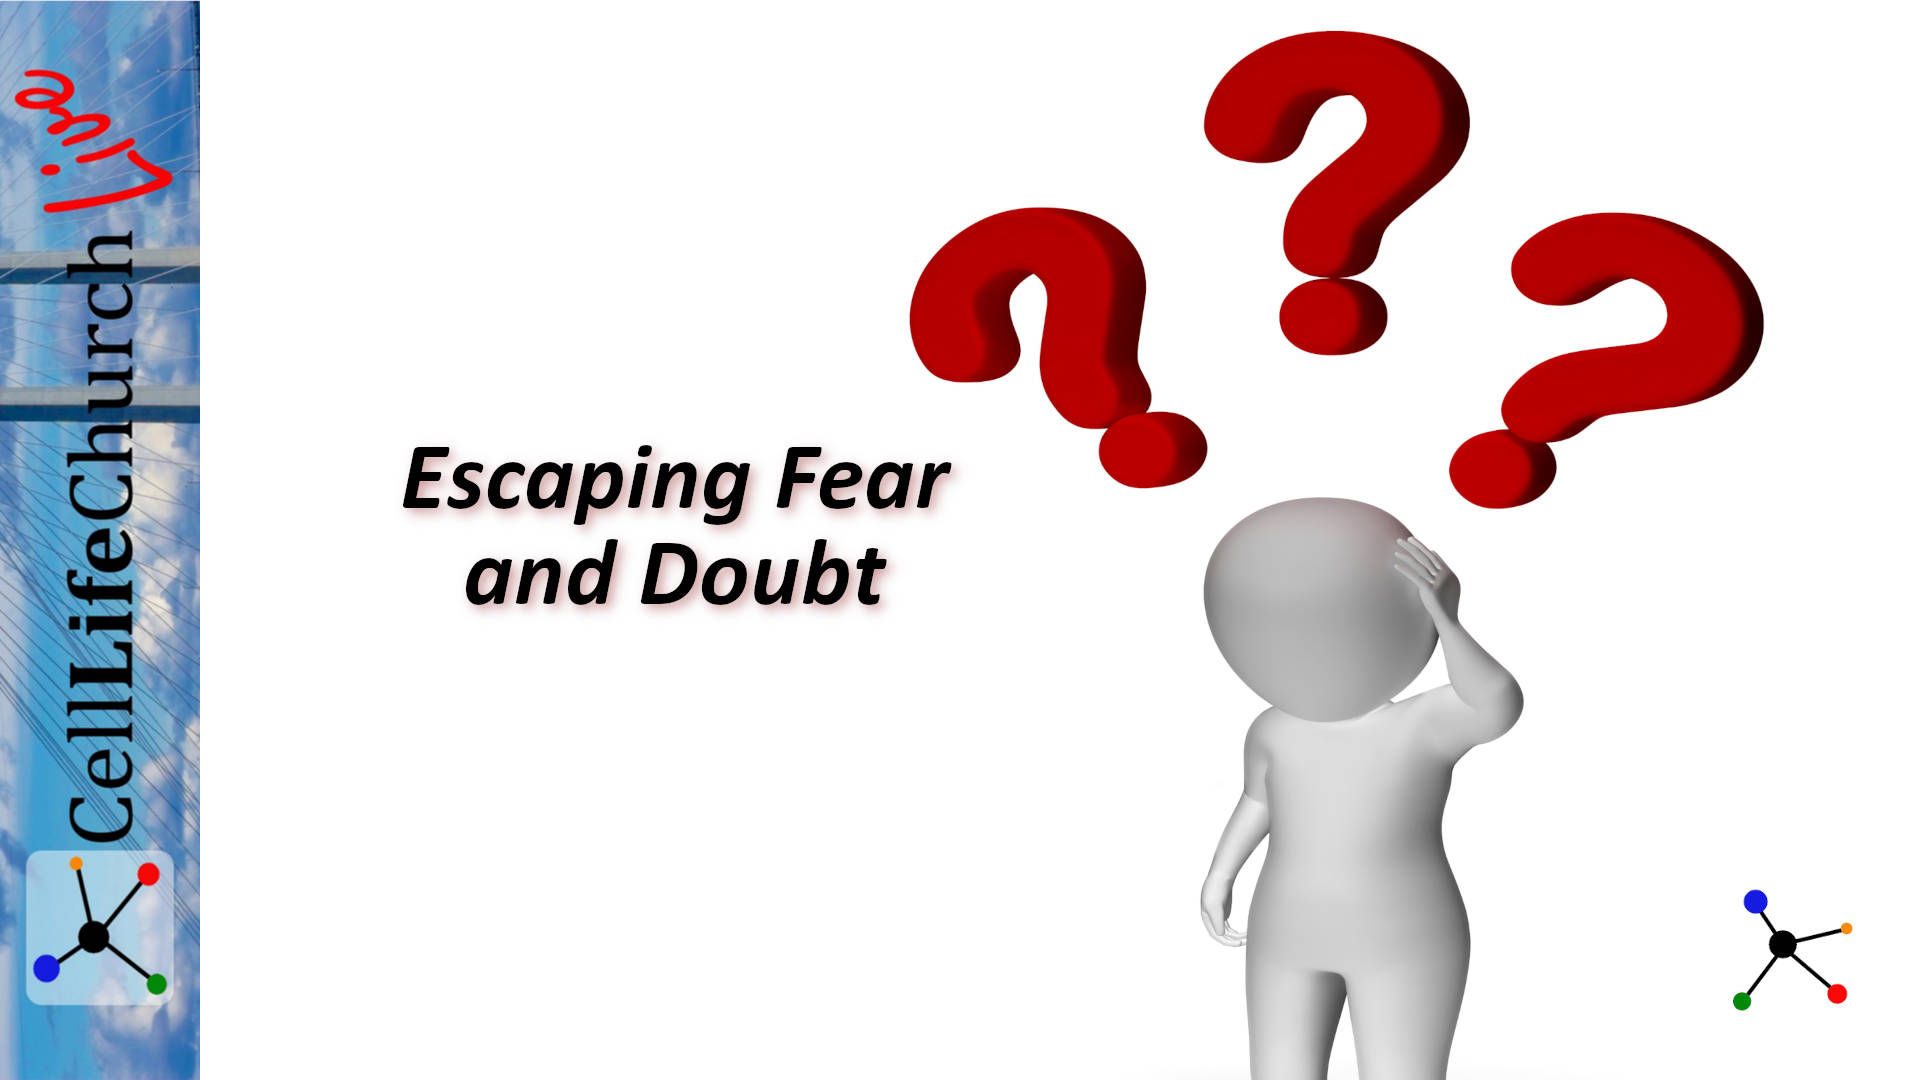 Escaping Fear and Doubt